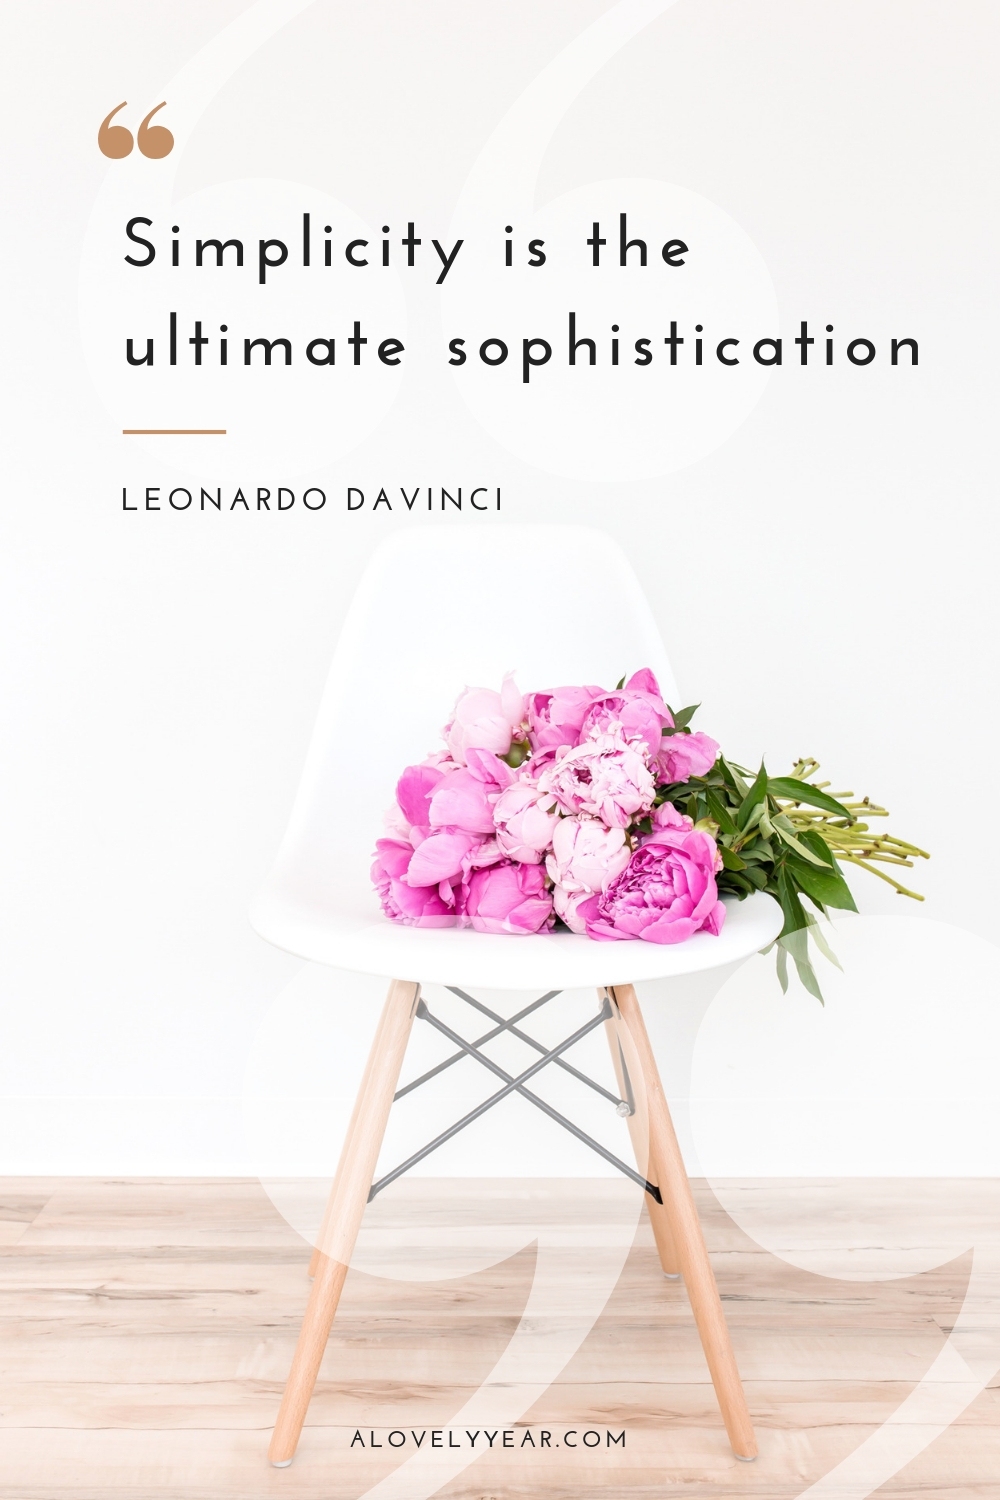 Decluttering quotes to inspire you into action | Simplicity is the ultimate sophistication –Leonardo DaVinci